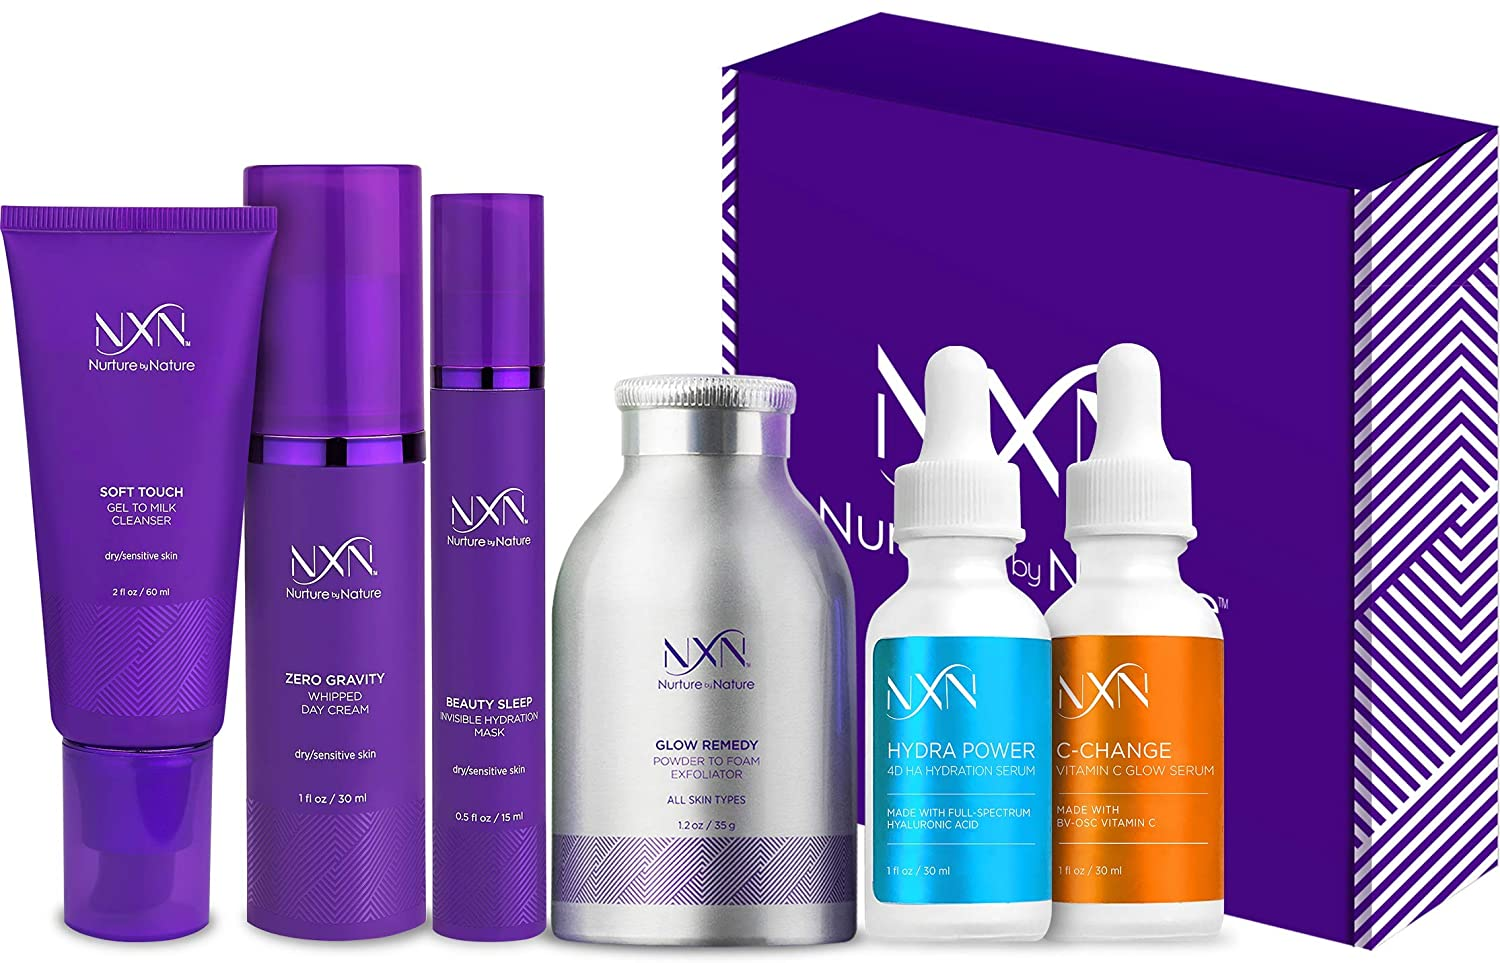 NxN Skin Care System, Complete Anti Aging Kit, Daily Moisturizer With Vitamin C & Hyaluronic Acid Serums, Face Moisturizer, Gentle Cleanser, Powder Exfoliator, Face Mask - Hydrate & Reduce Wrinkles